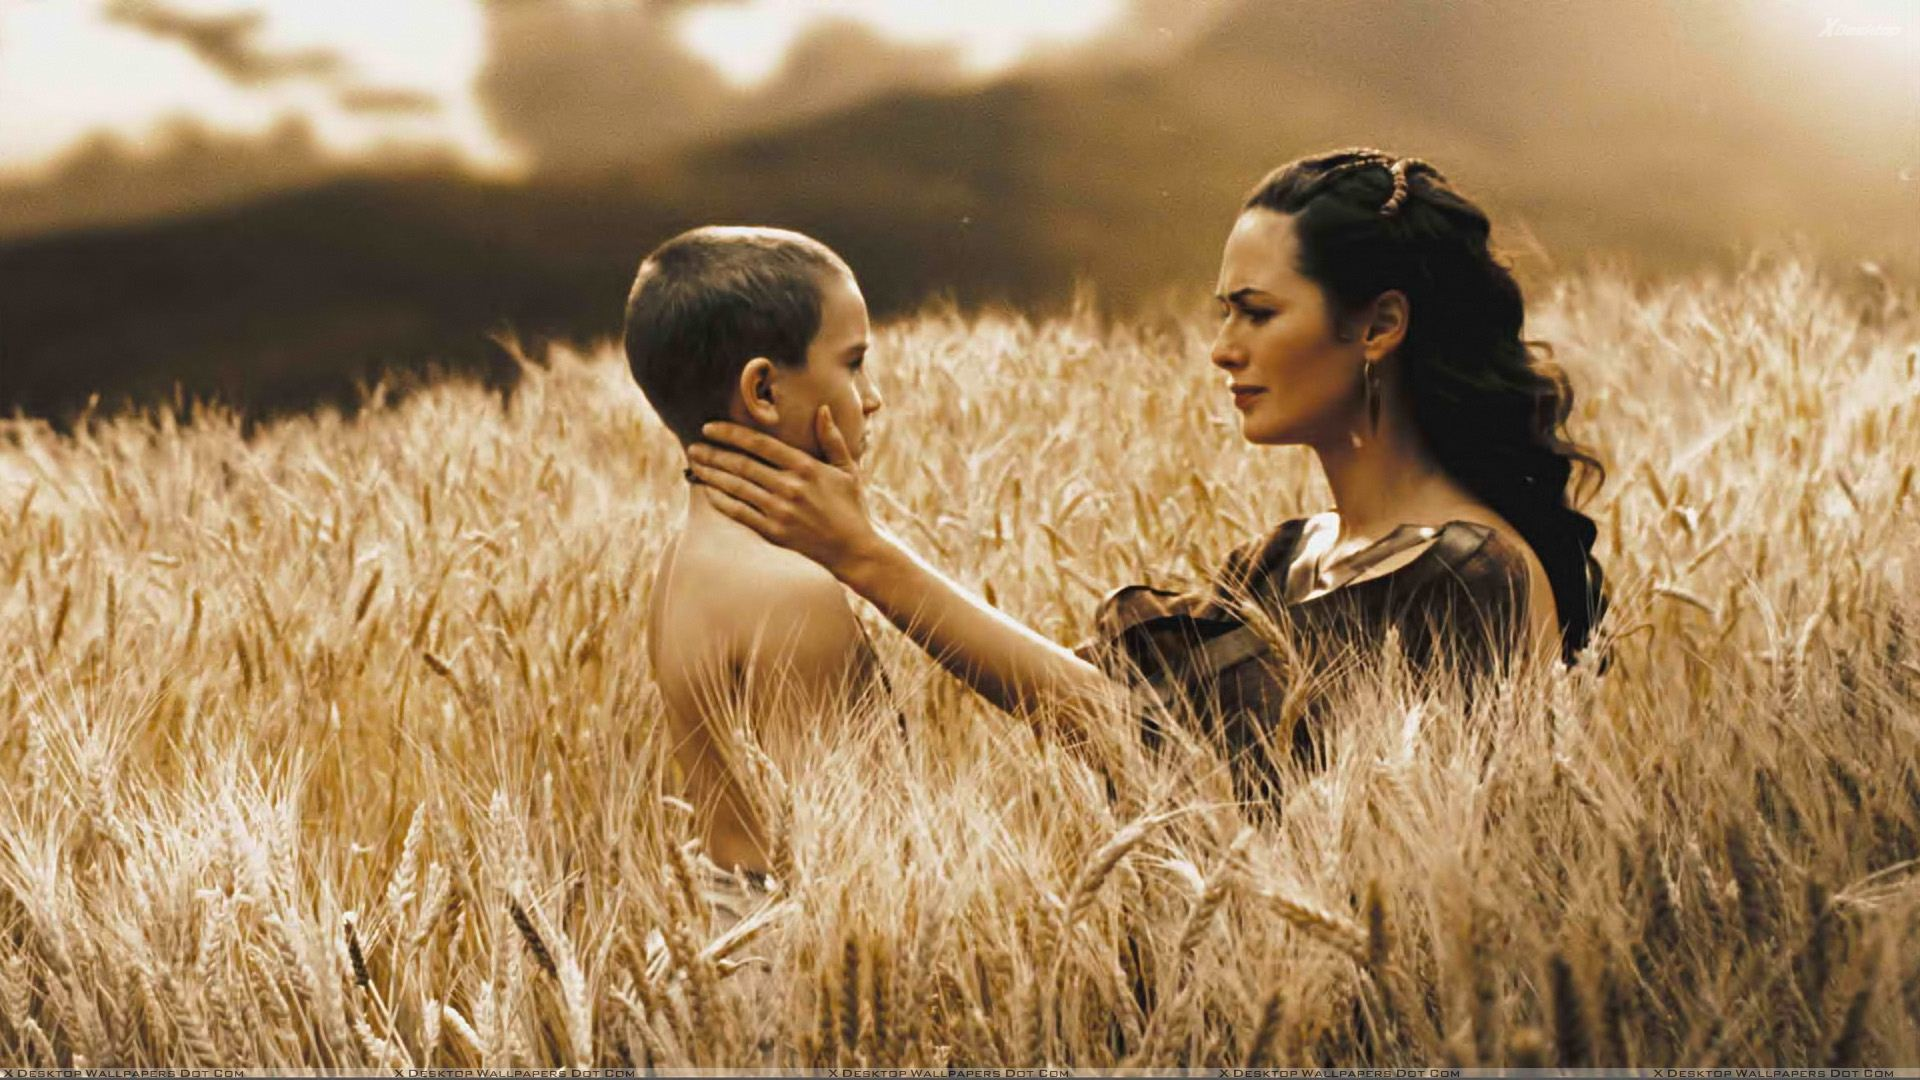 300_lena_headey_with_boy_in_field.jpg